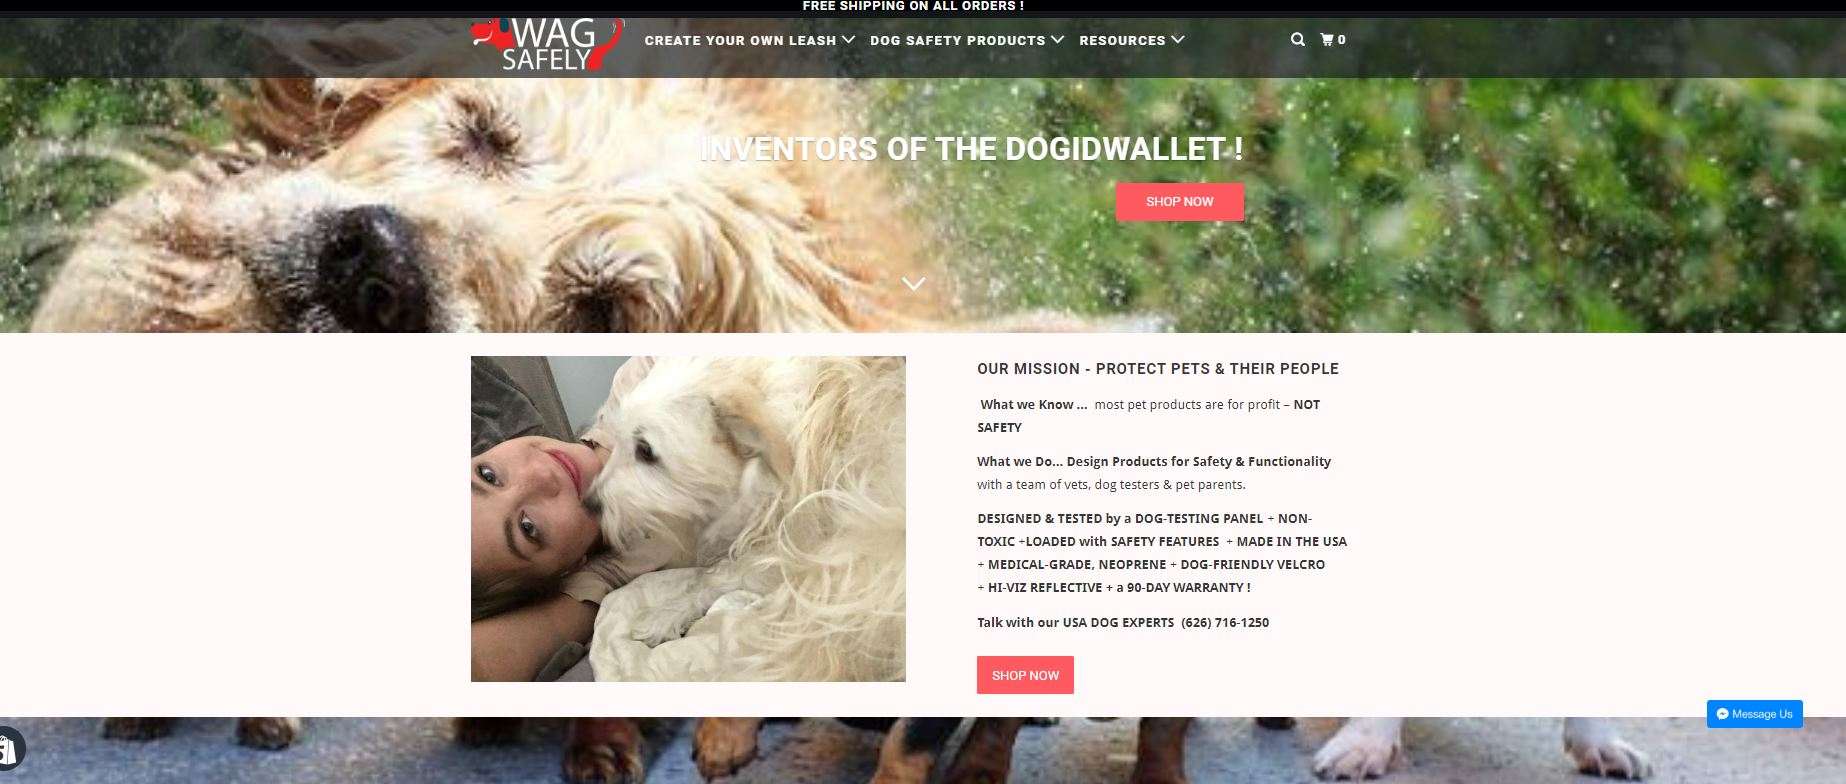 WagSafely™ For Sale   Buy an Online Business